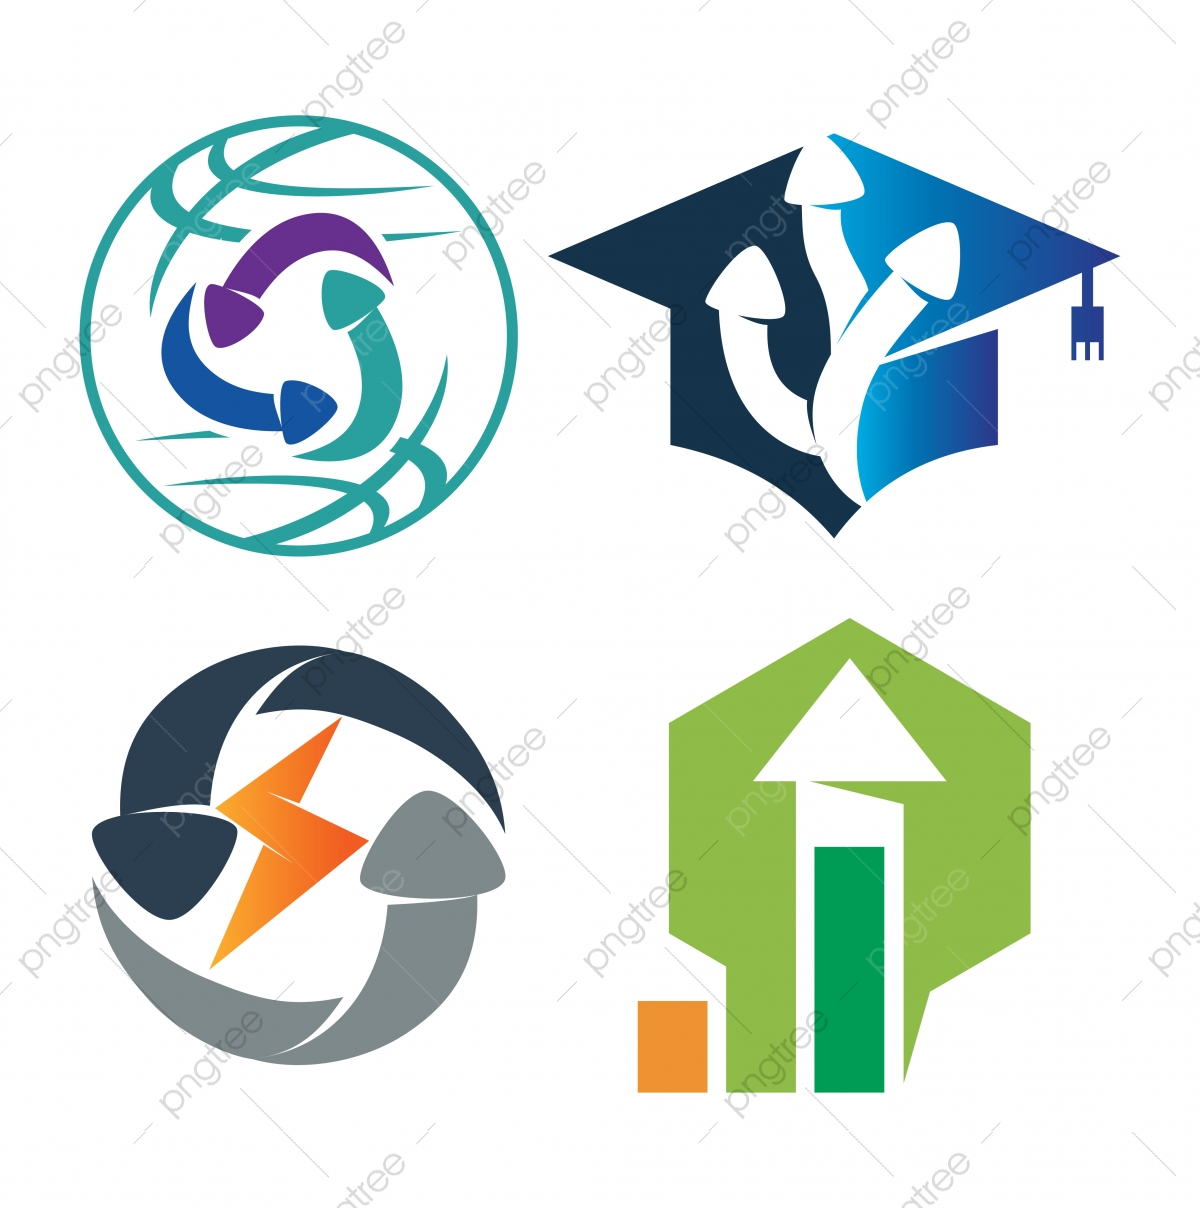 World Education Bolt Business Arrow Direction Vector Color Set Arrow Icons Business Icons Education Icons Png And Vector With Transparent Background For Free Download